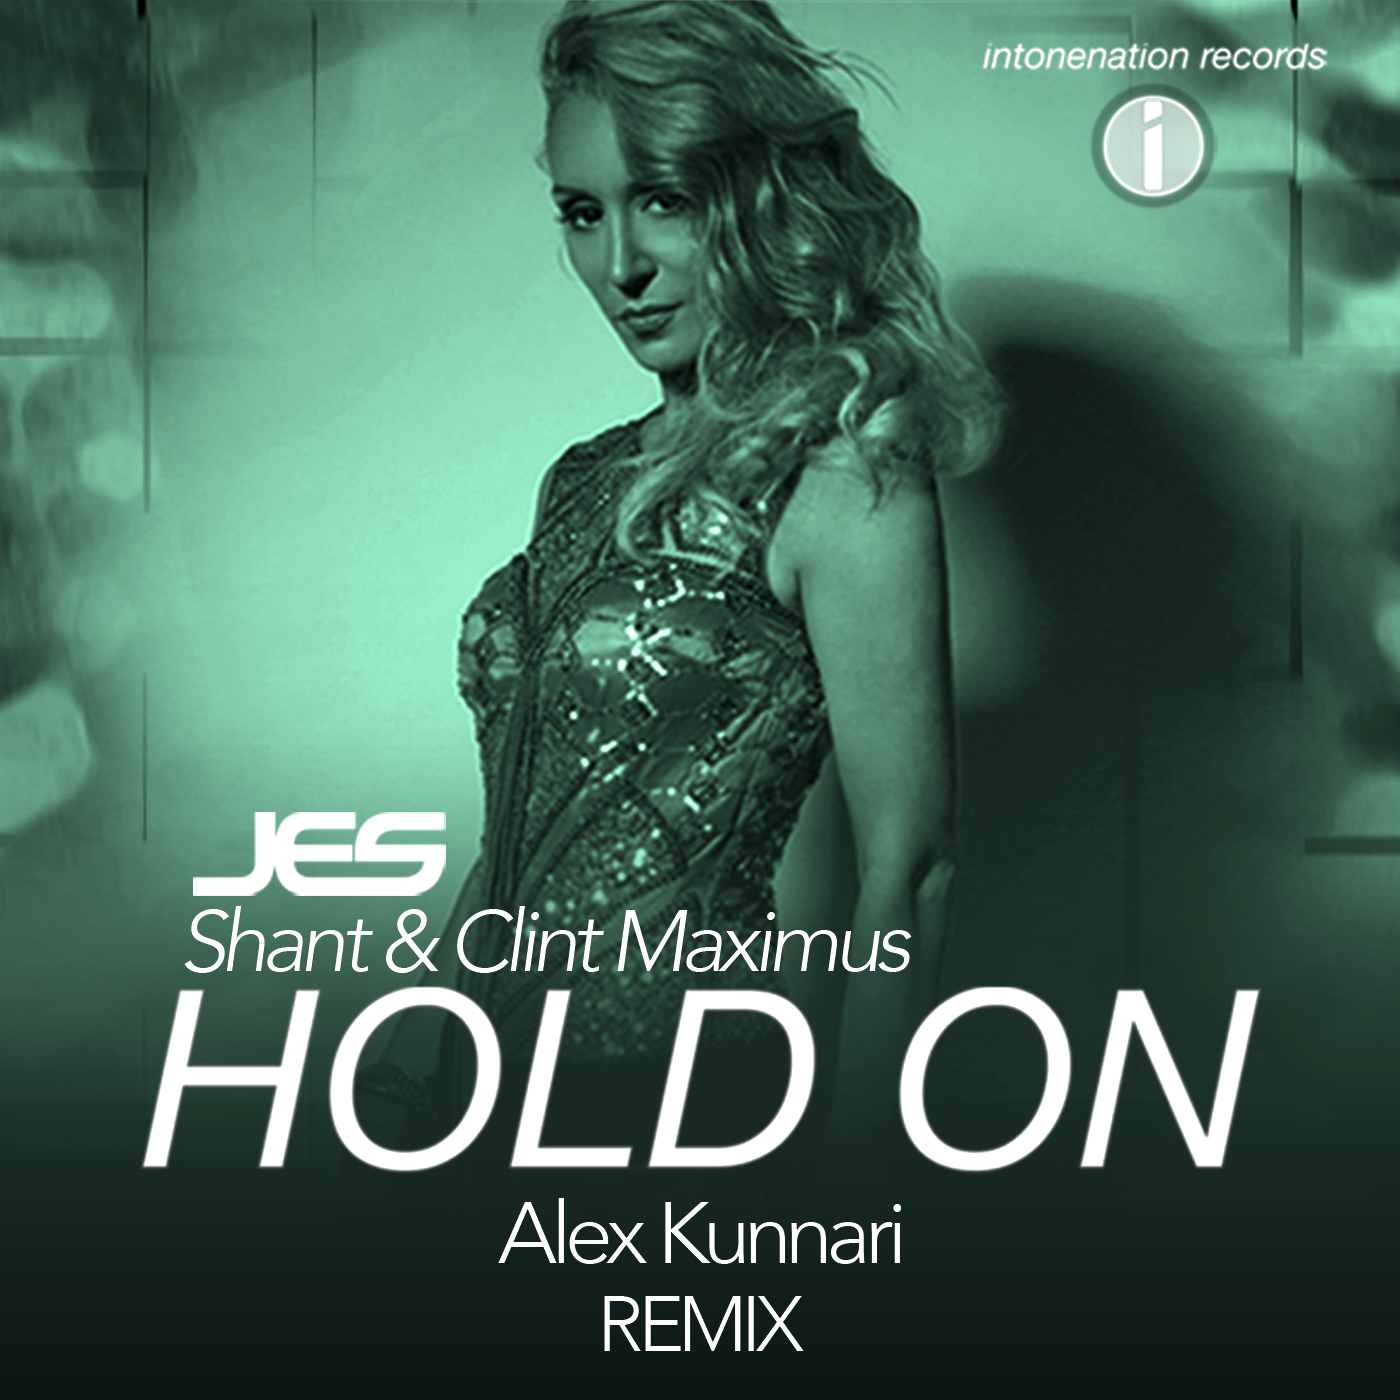 Hold On - Album Cover AK remix_fnl